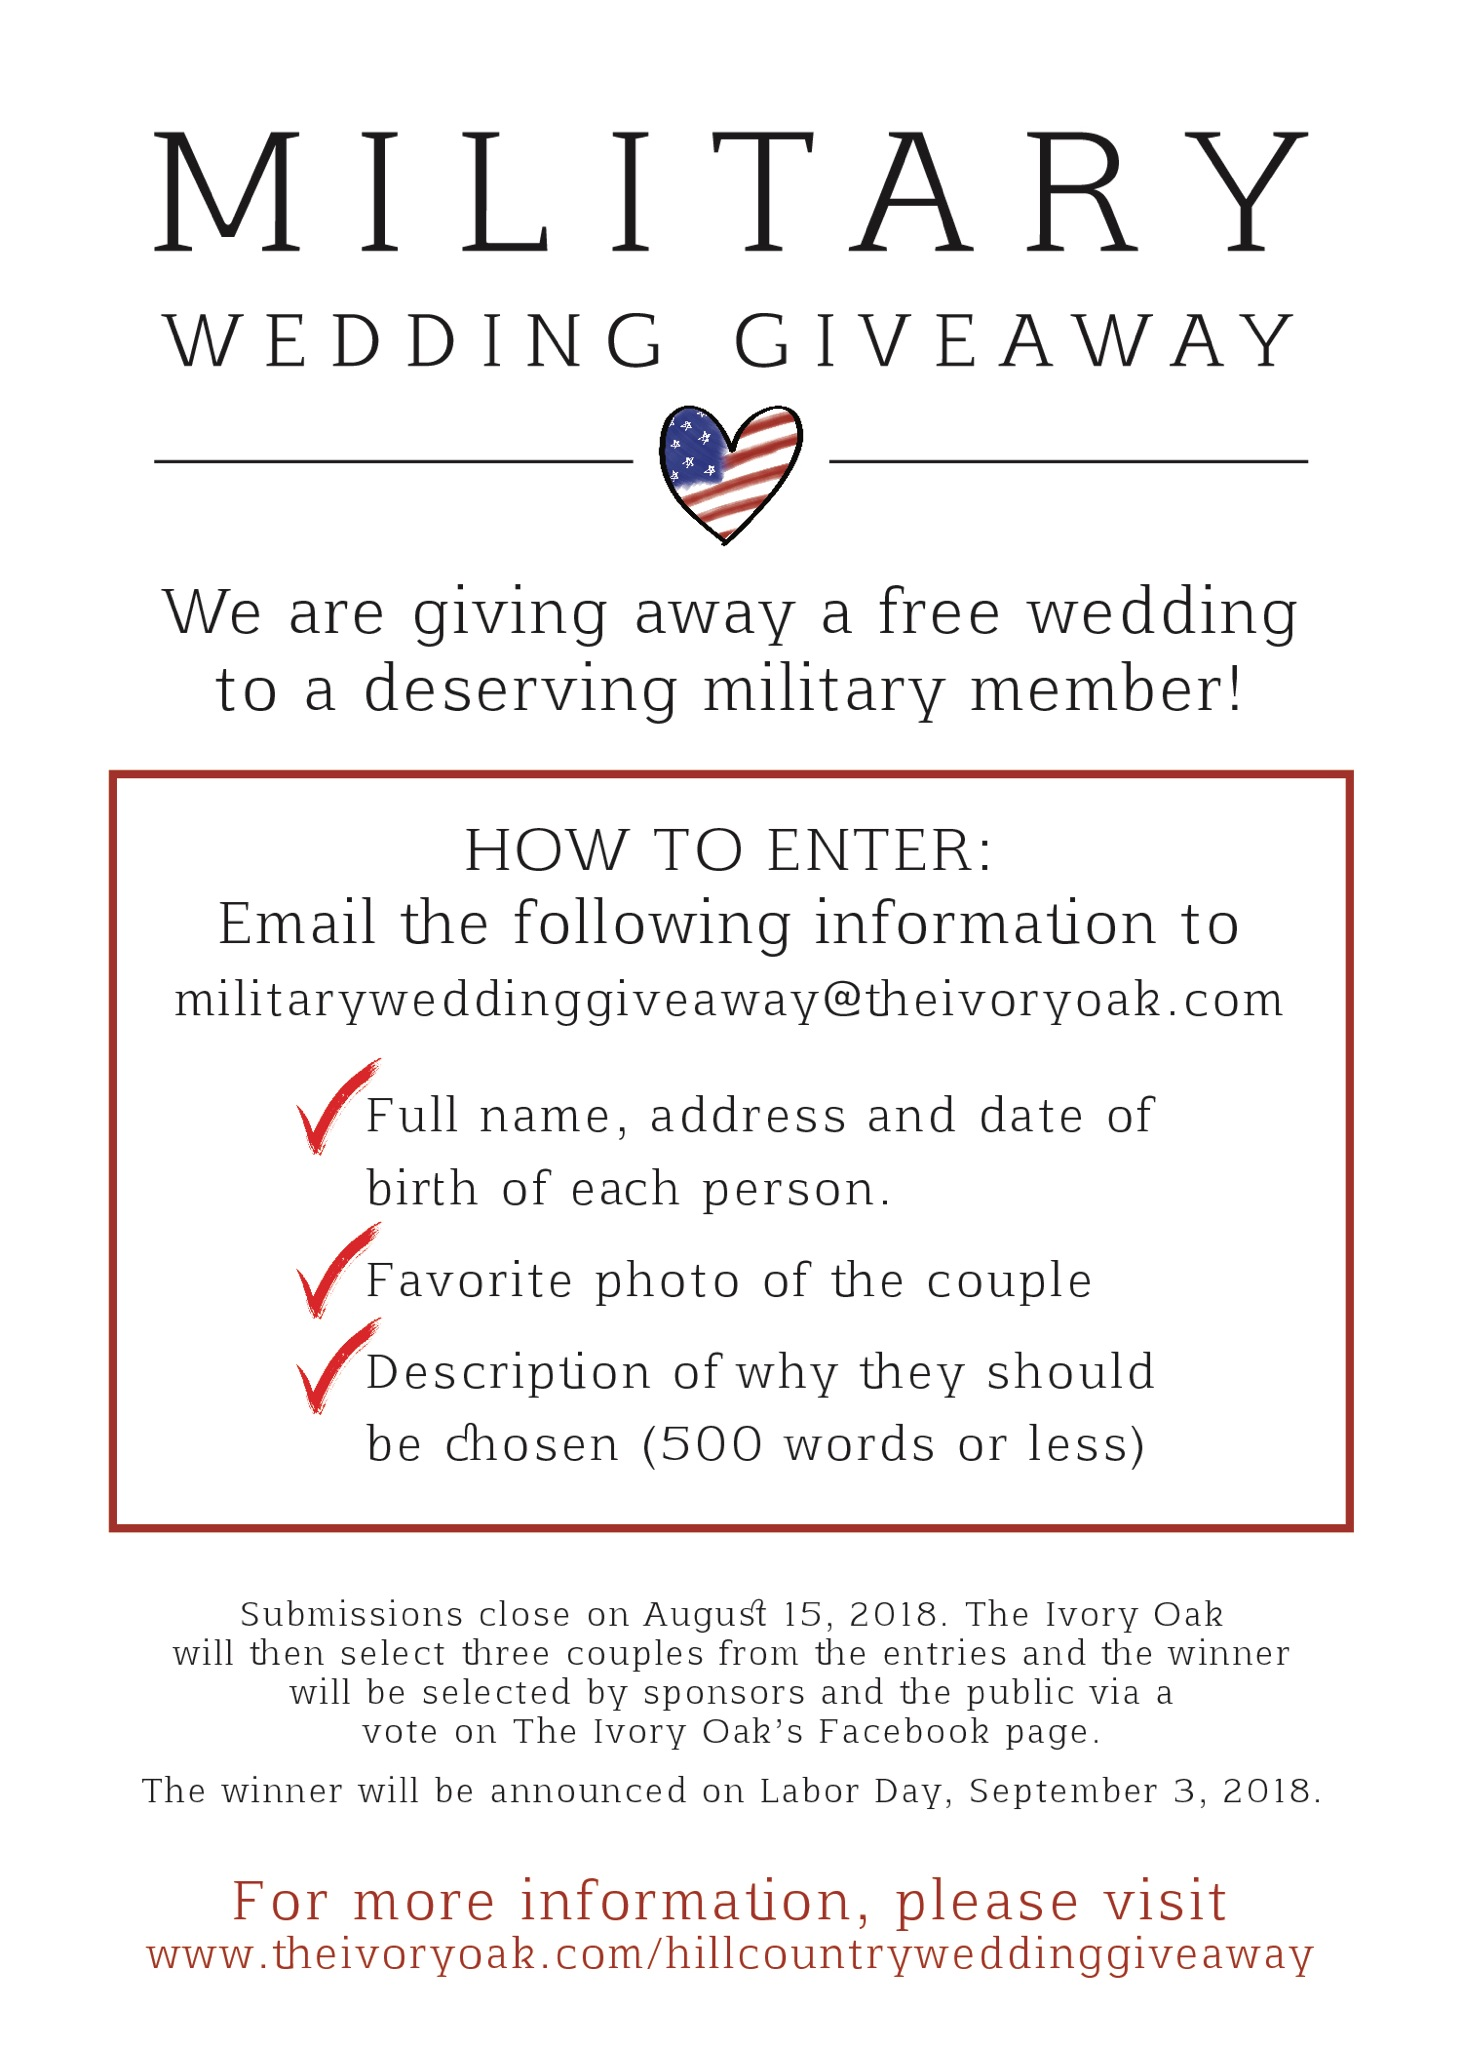 The Ivory Oak - Military Wedding Giveaway Flyer.jpeg